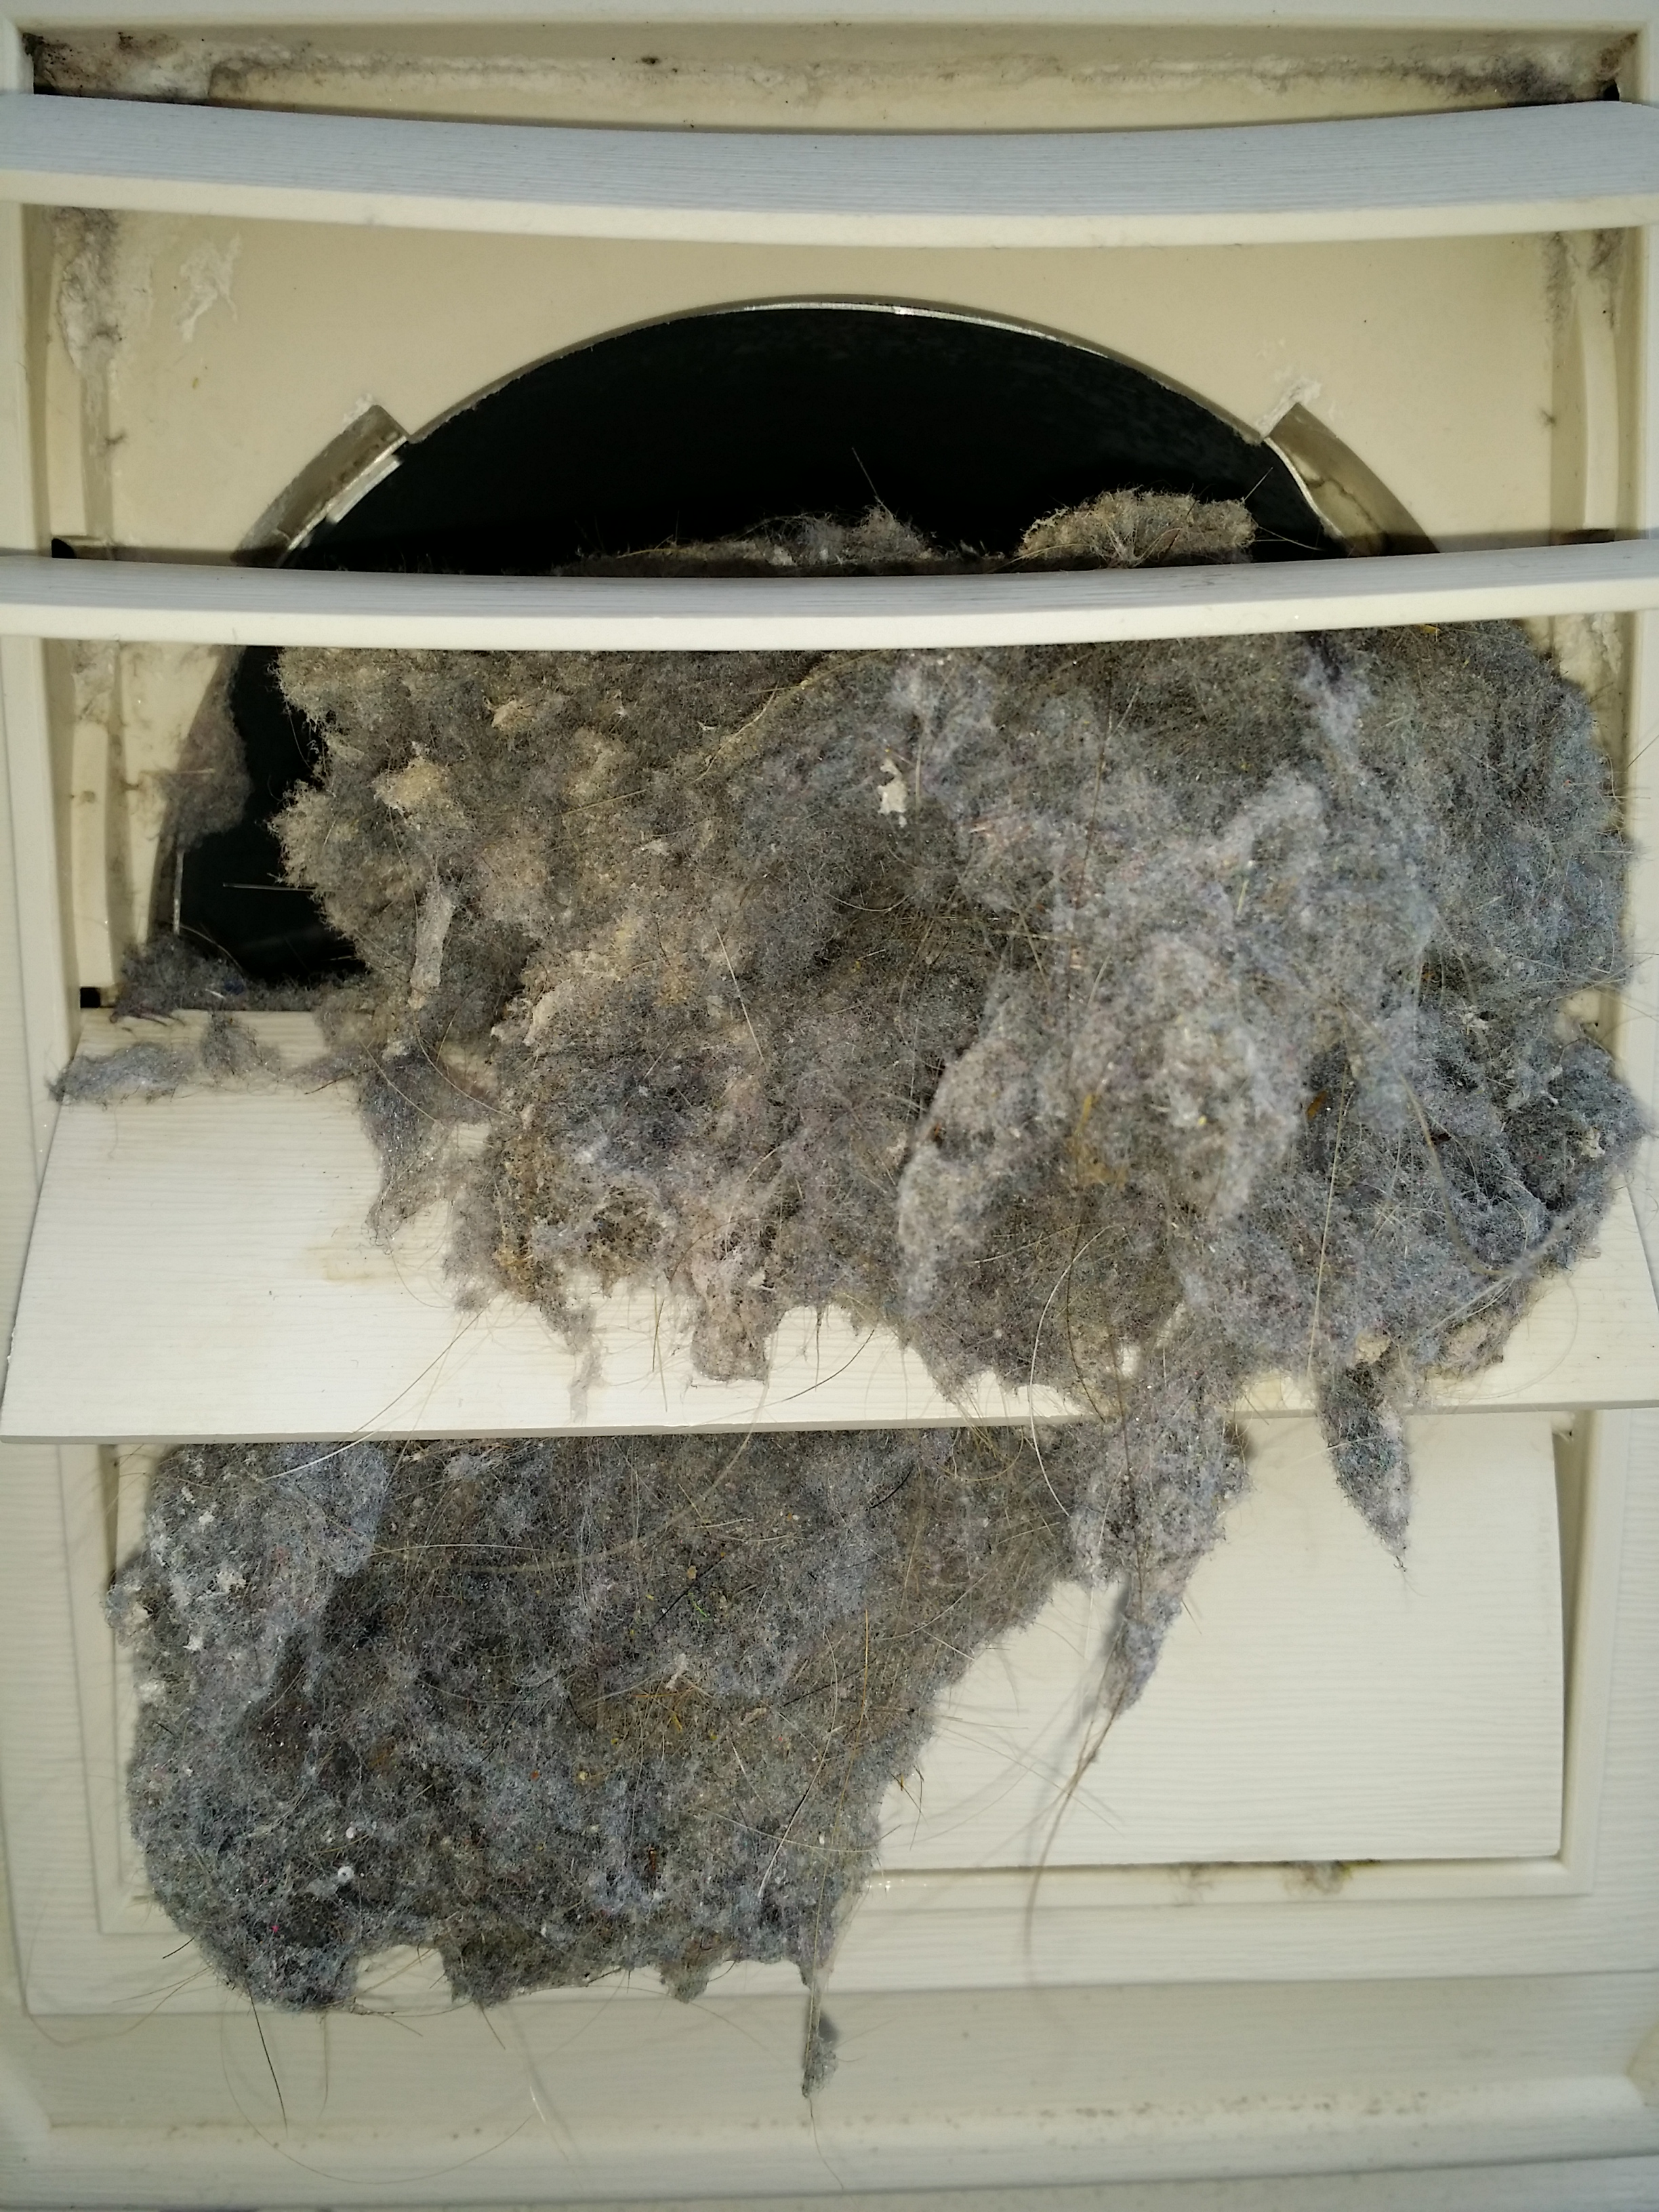 Dryer Vent Cleaning Air Duct Dryer Vent Amp Carpet Cleaning